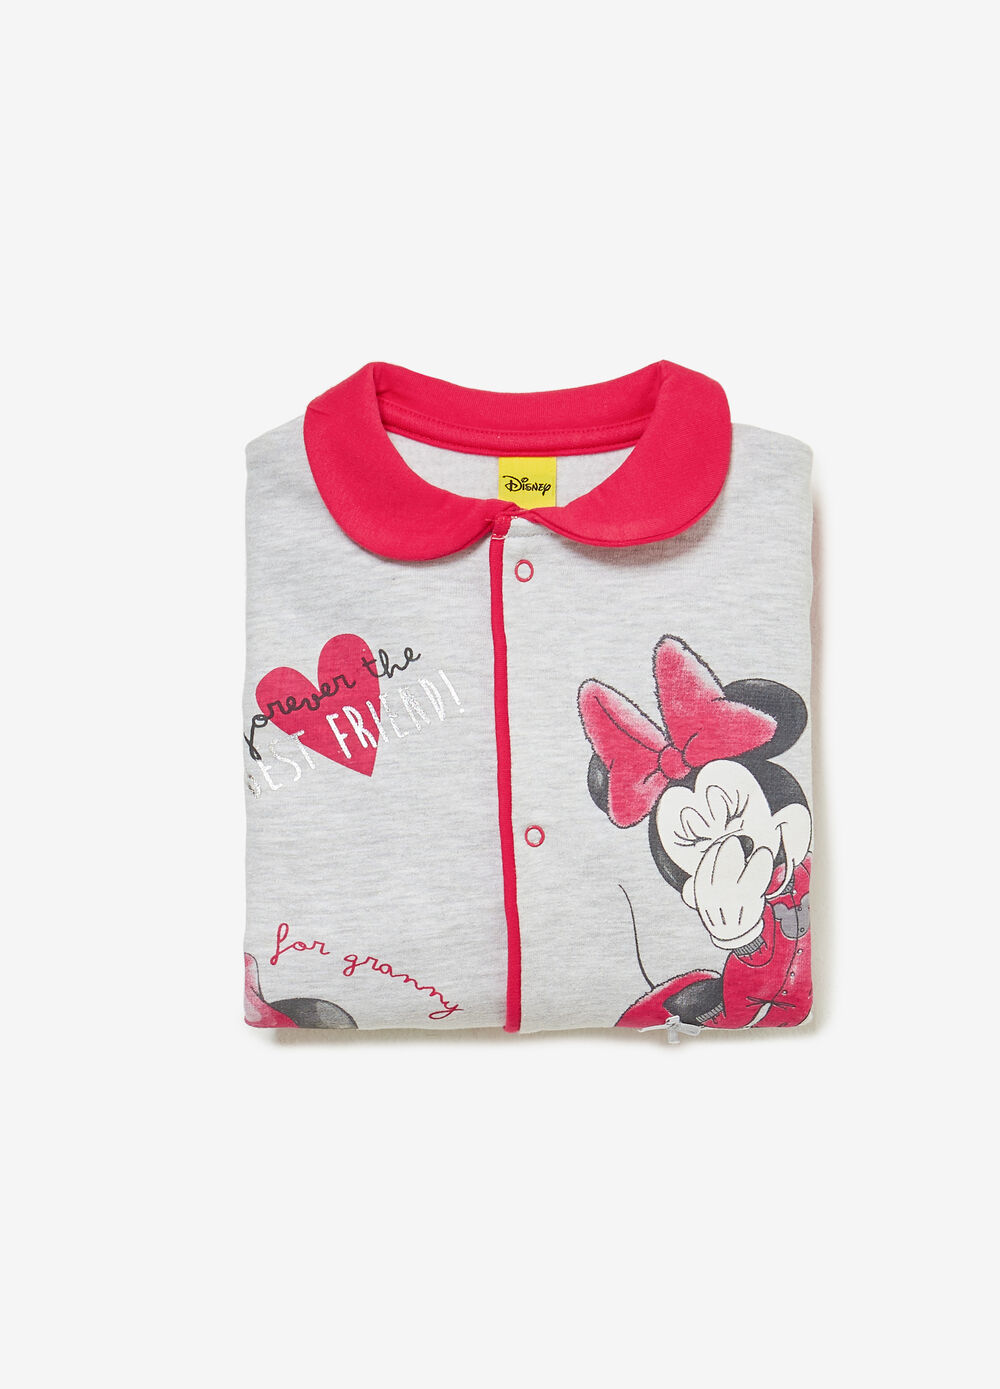 Minnie Mouse BCI sleepsuit in 100% cotton